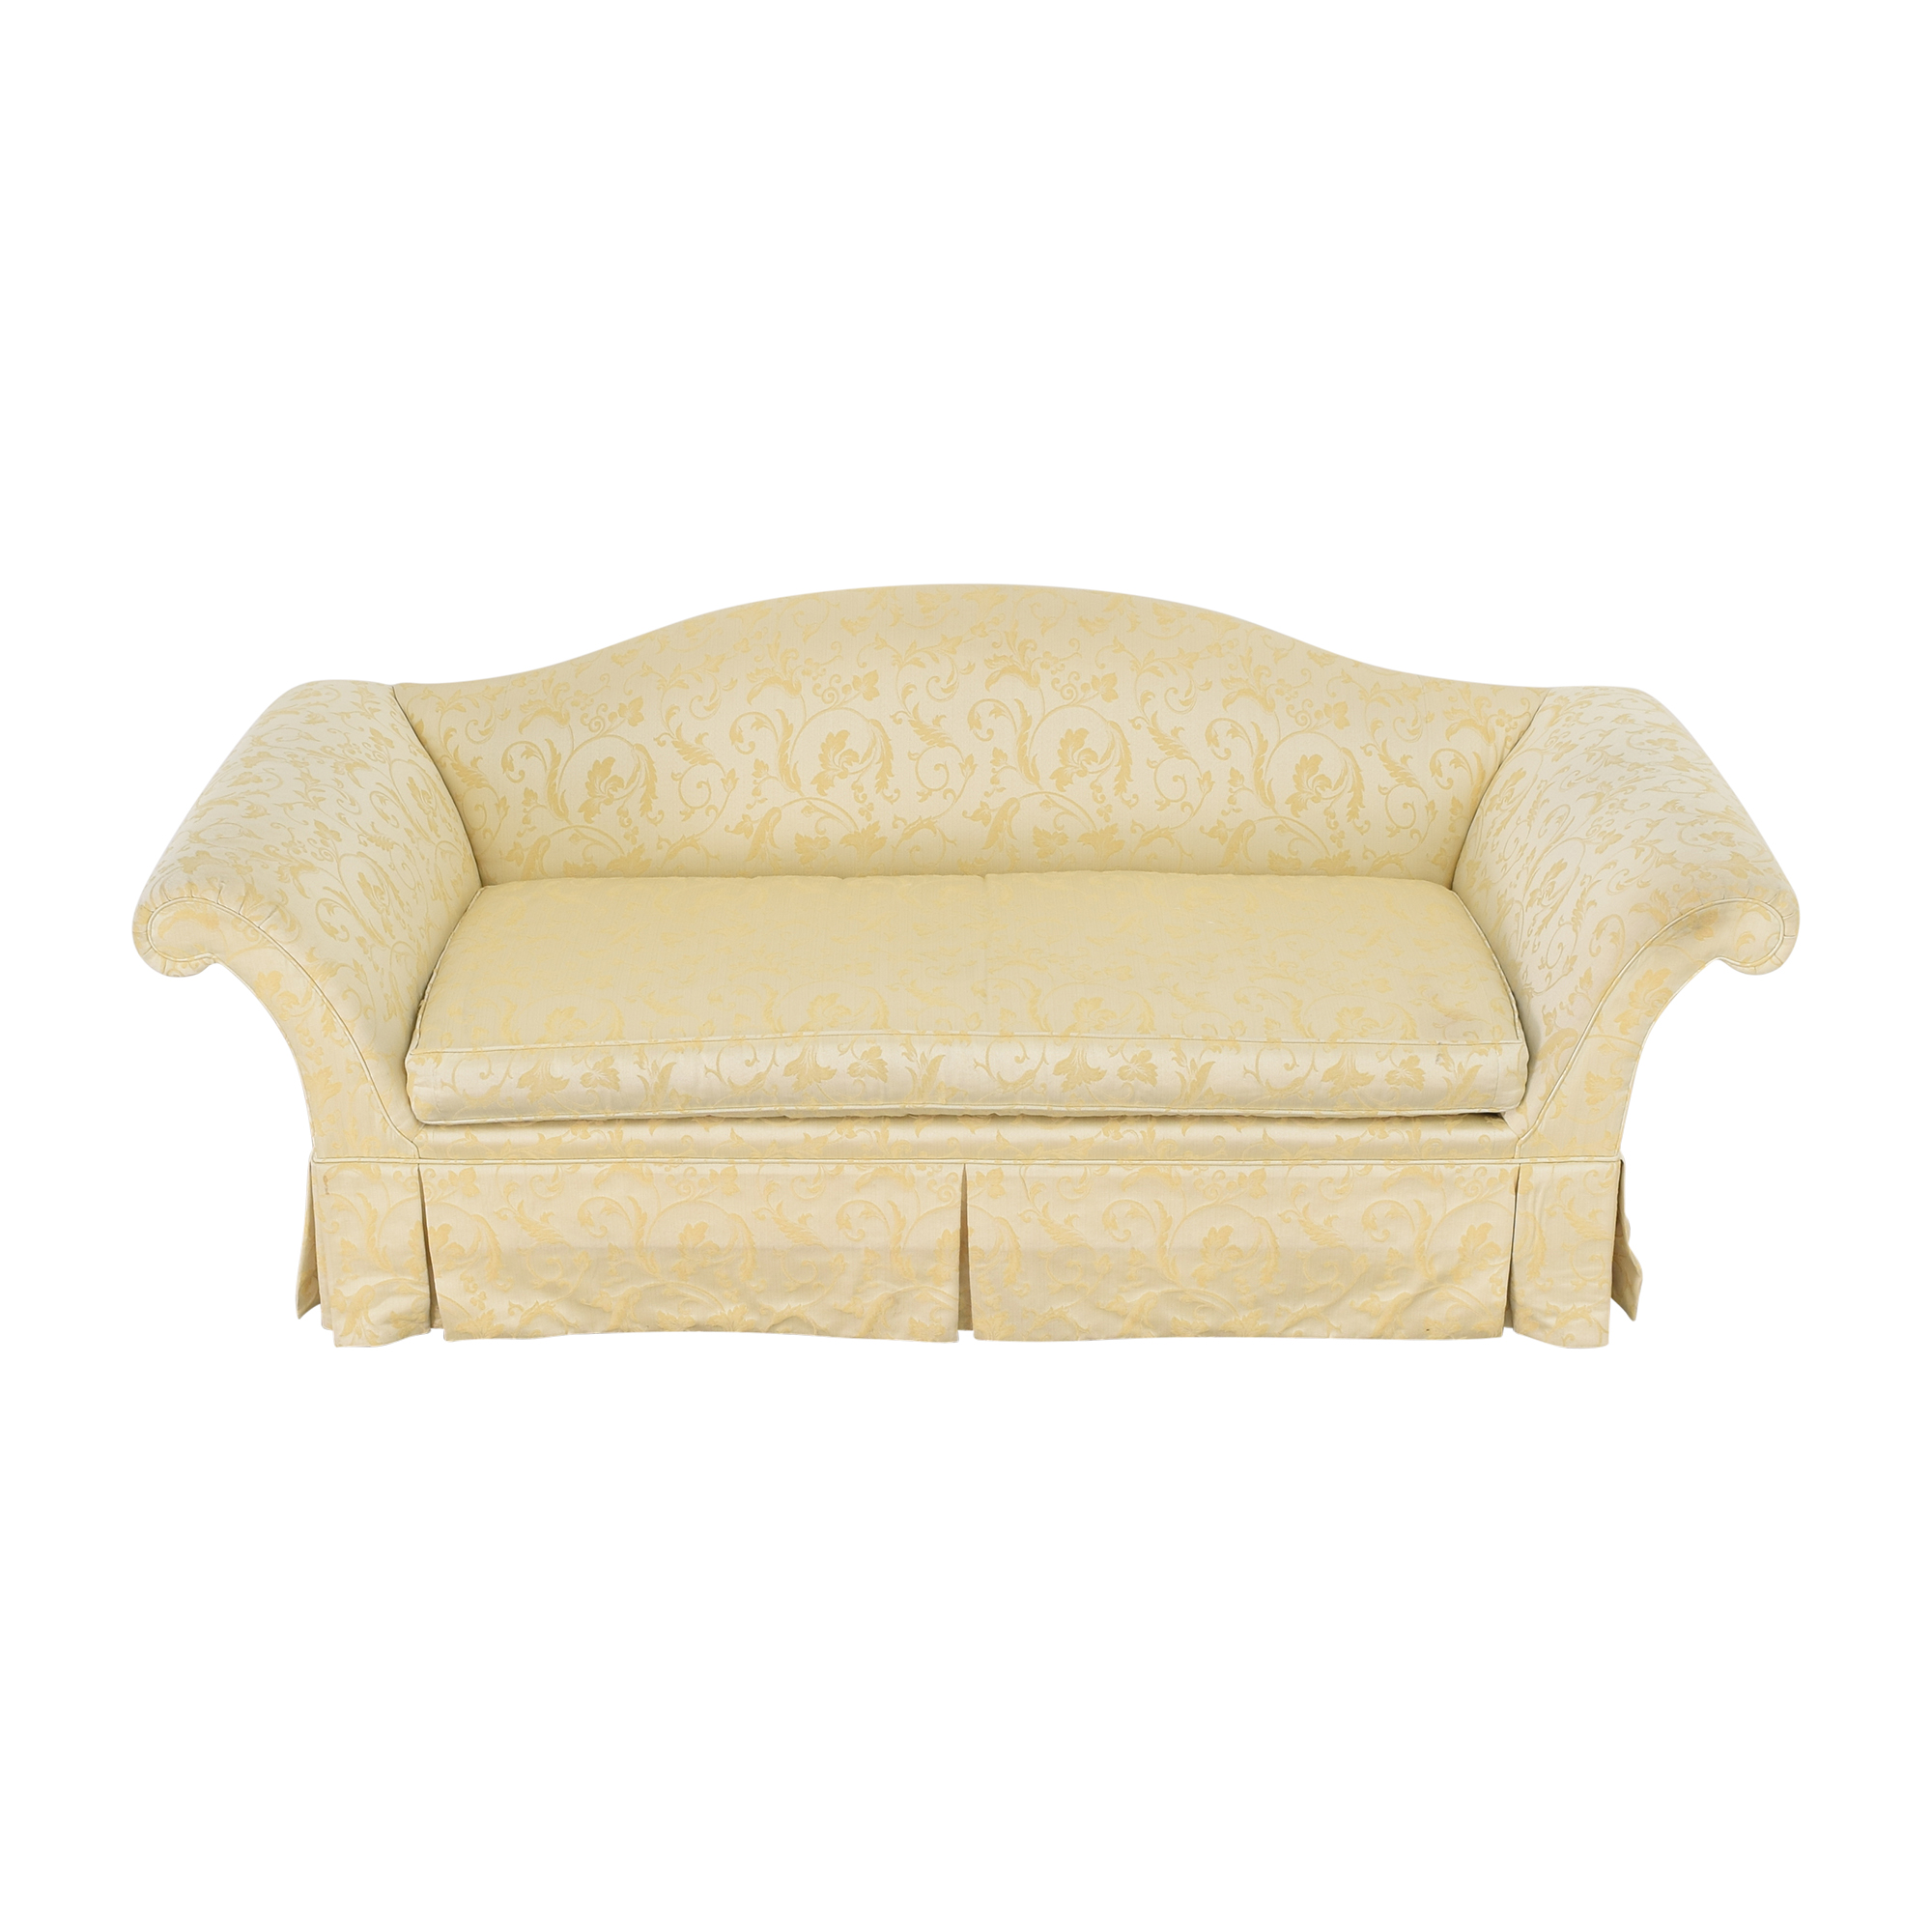 buy Kindel Skirted Camelback Sofa Kindel Sofas